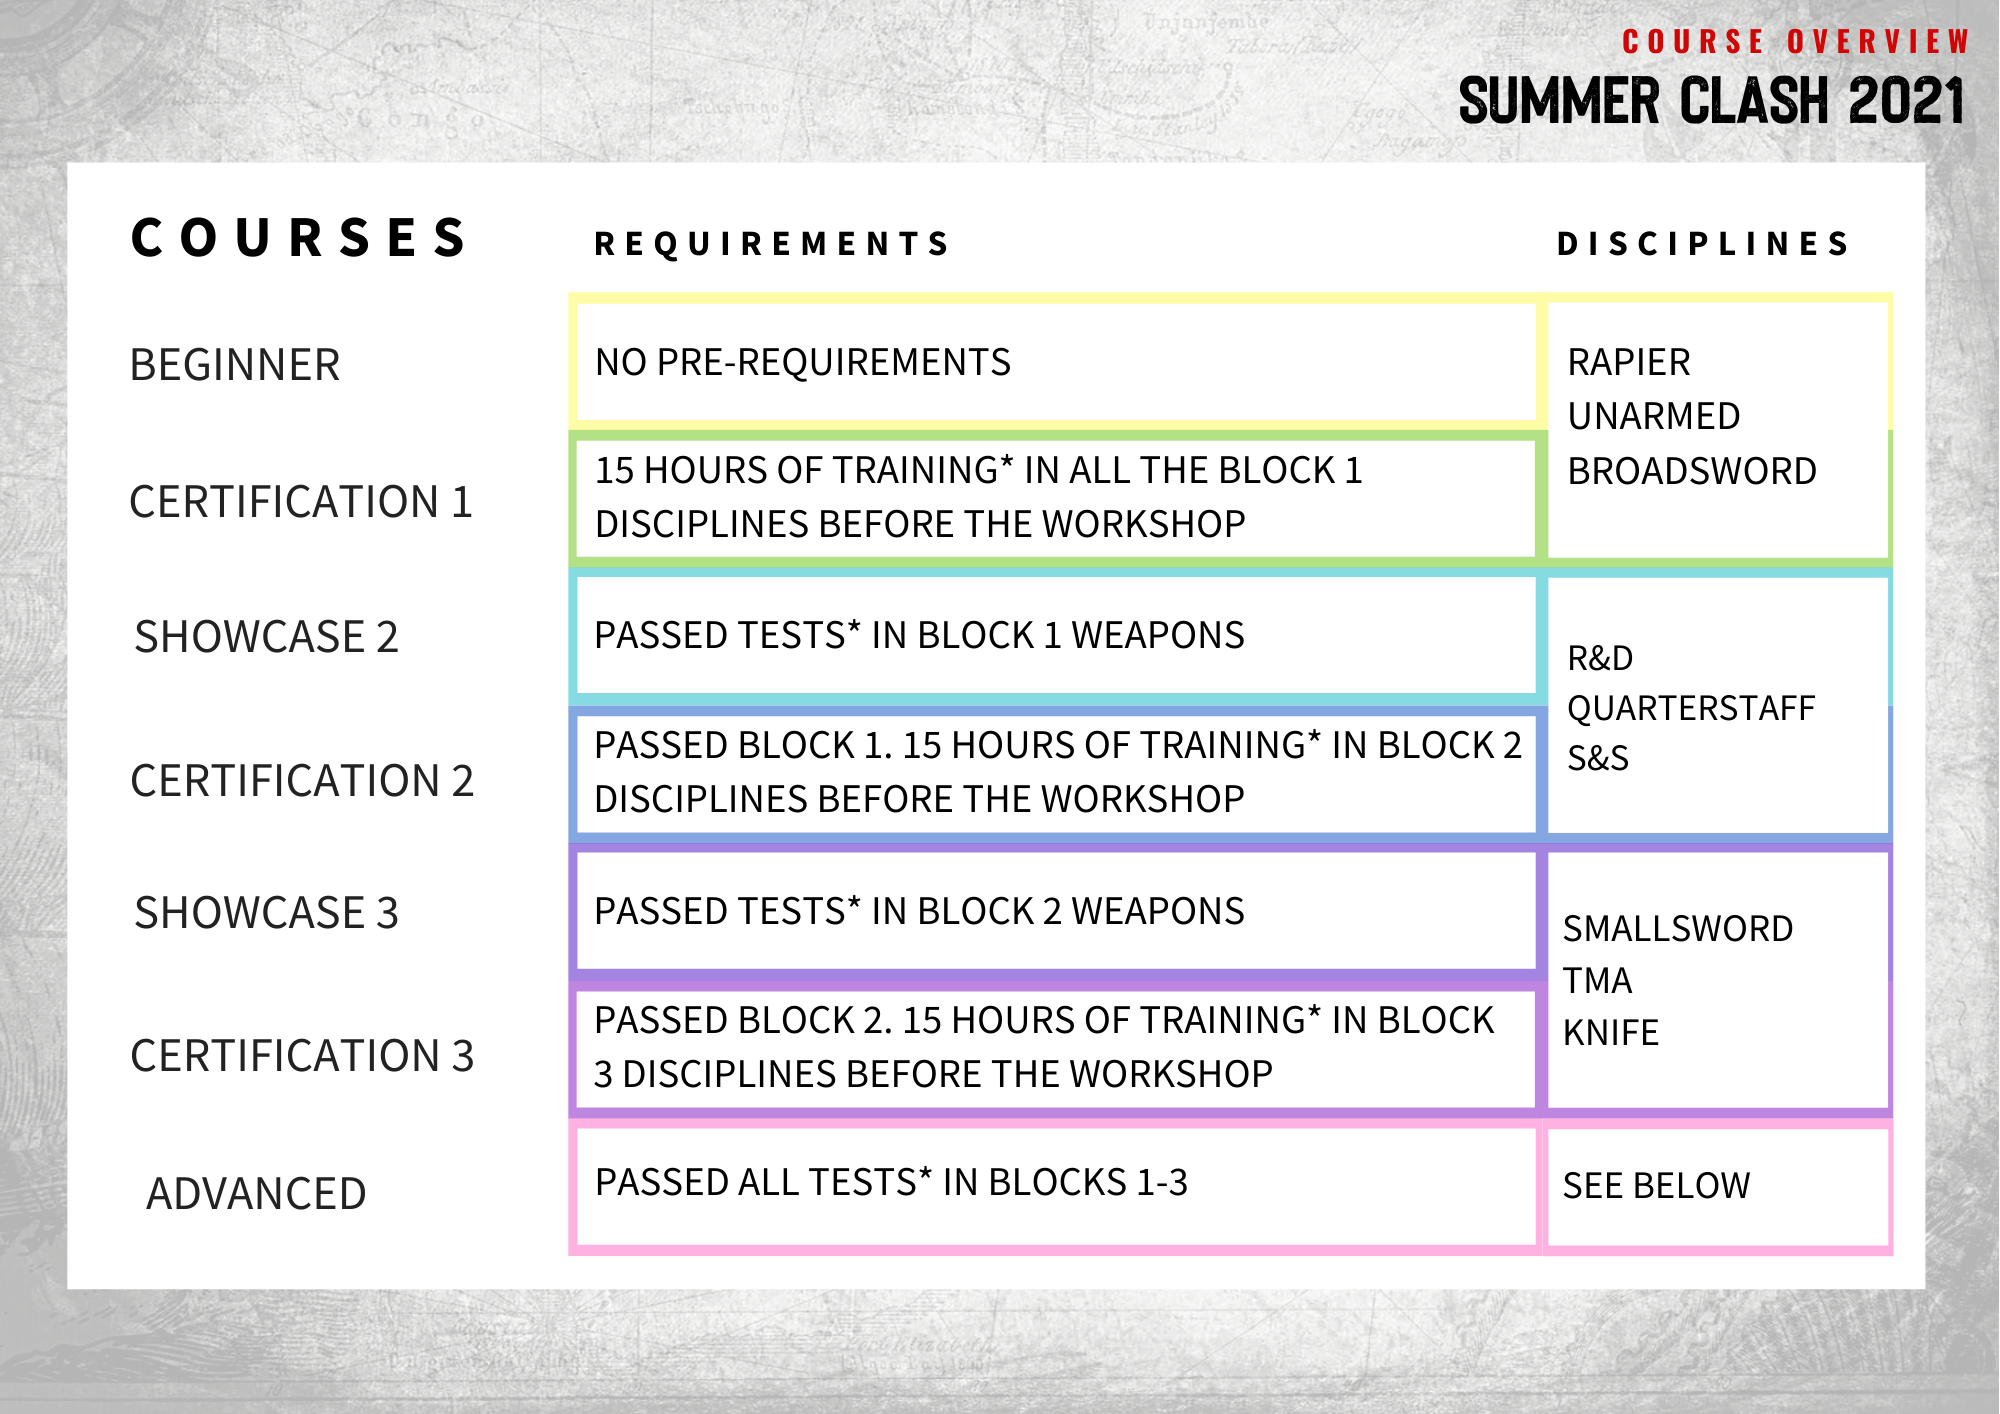 Summer Clash - Course Prerequisites and Topics for all levels from Beginners to Advanced